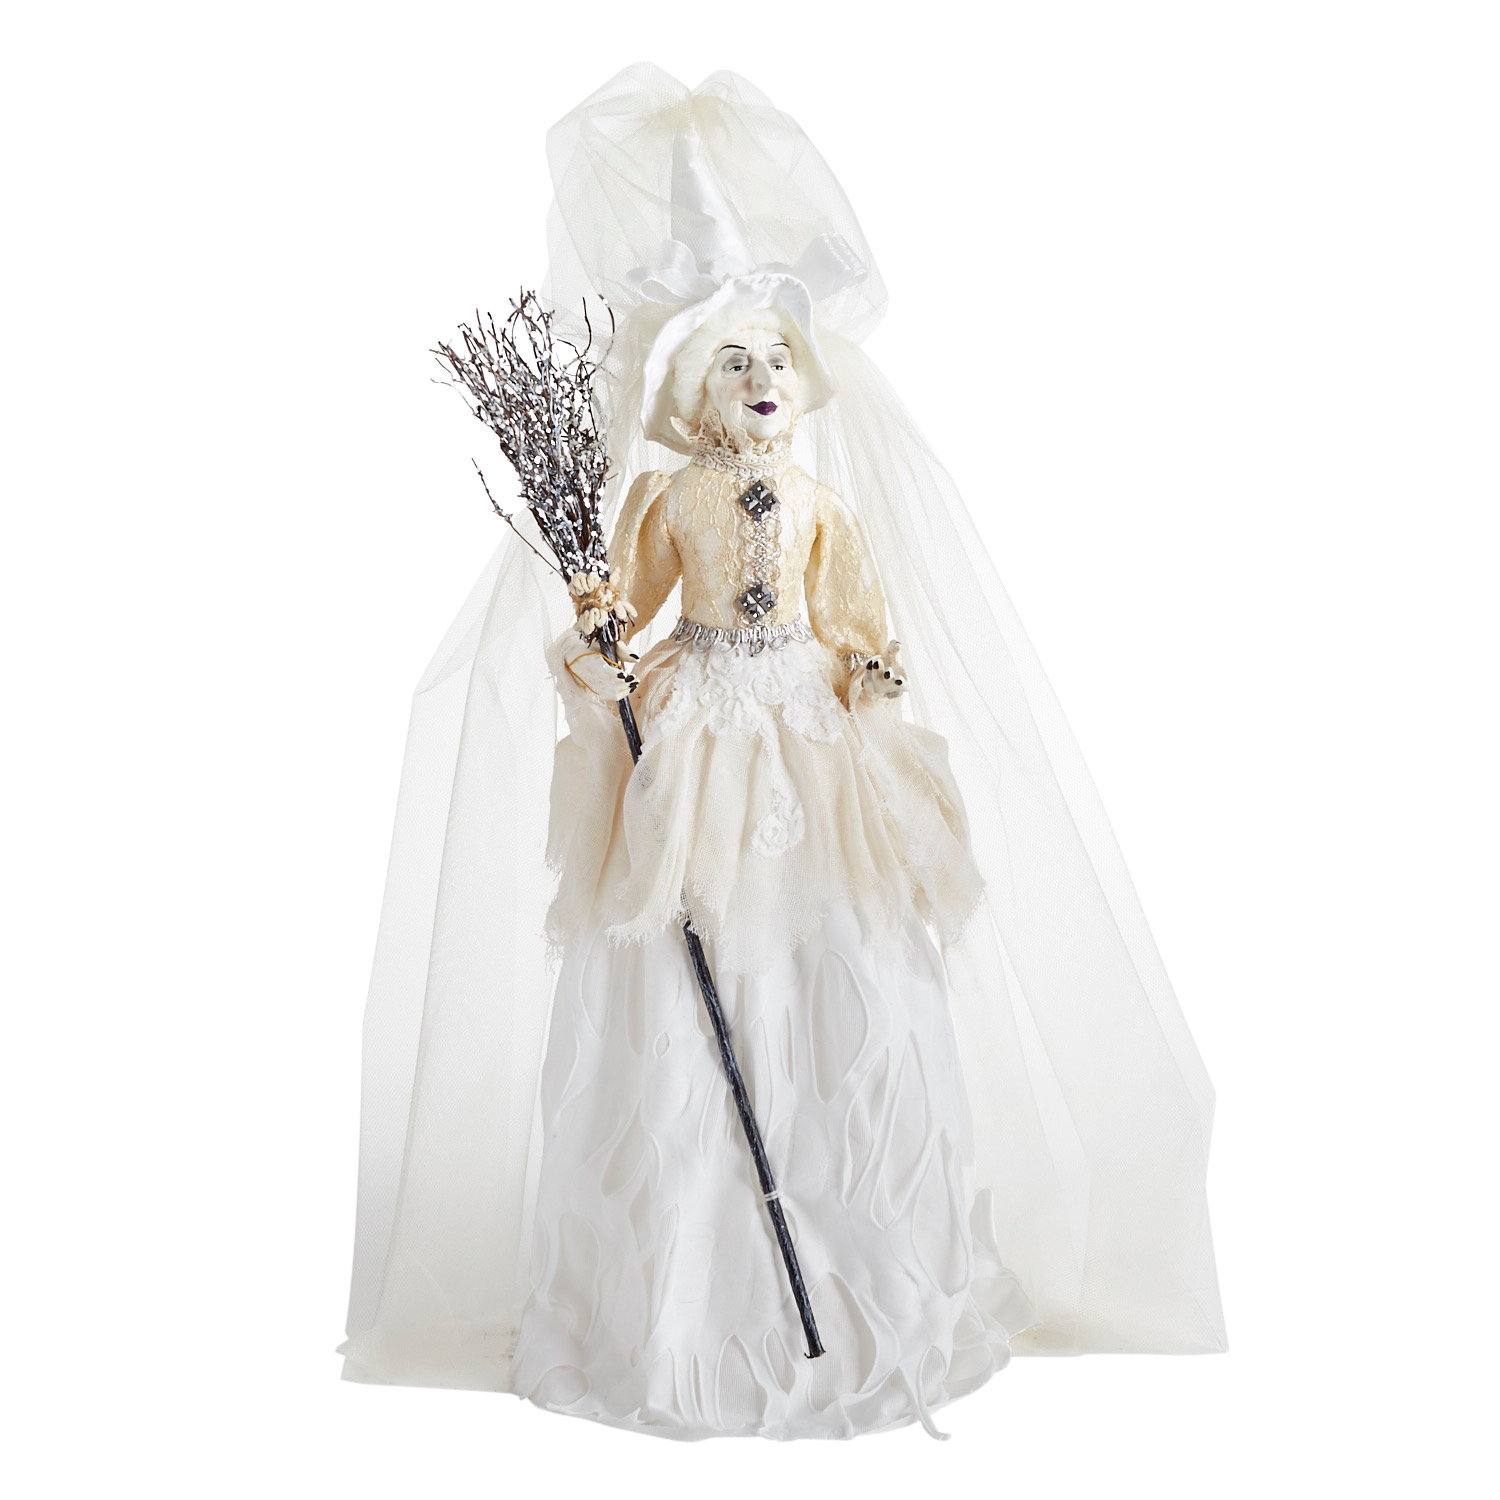 Bianca Follyfrock the Witch in White Dress